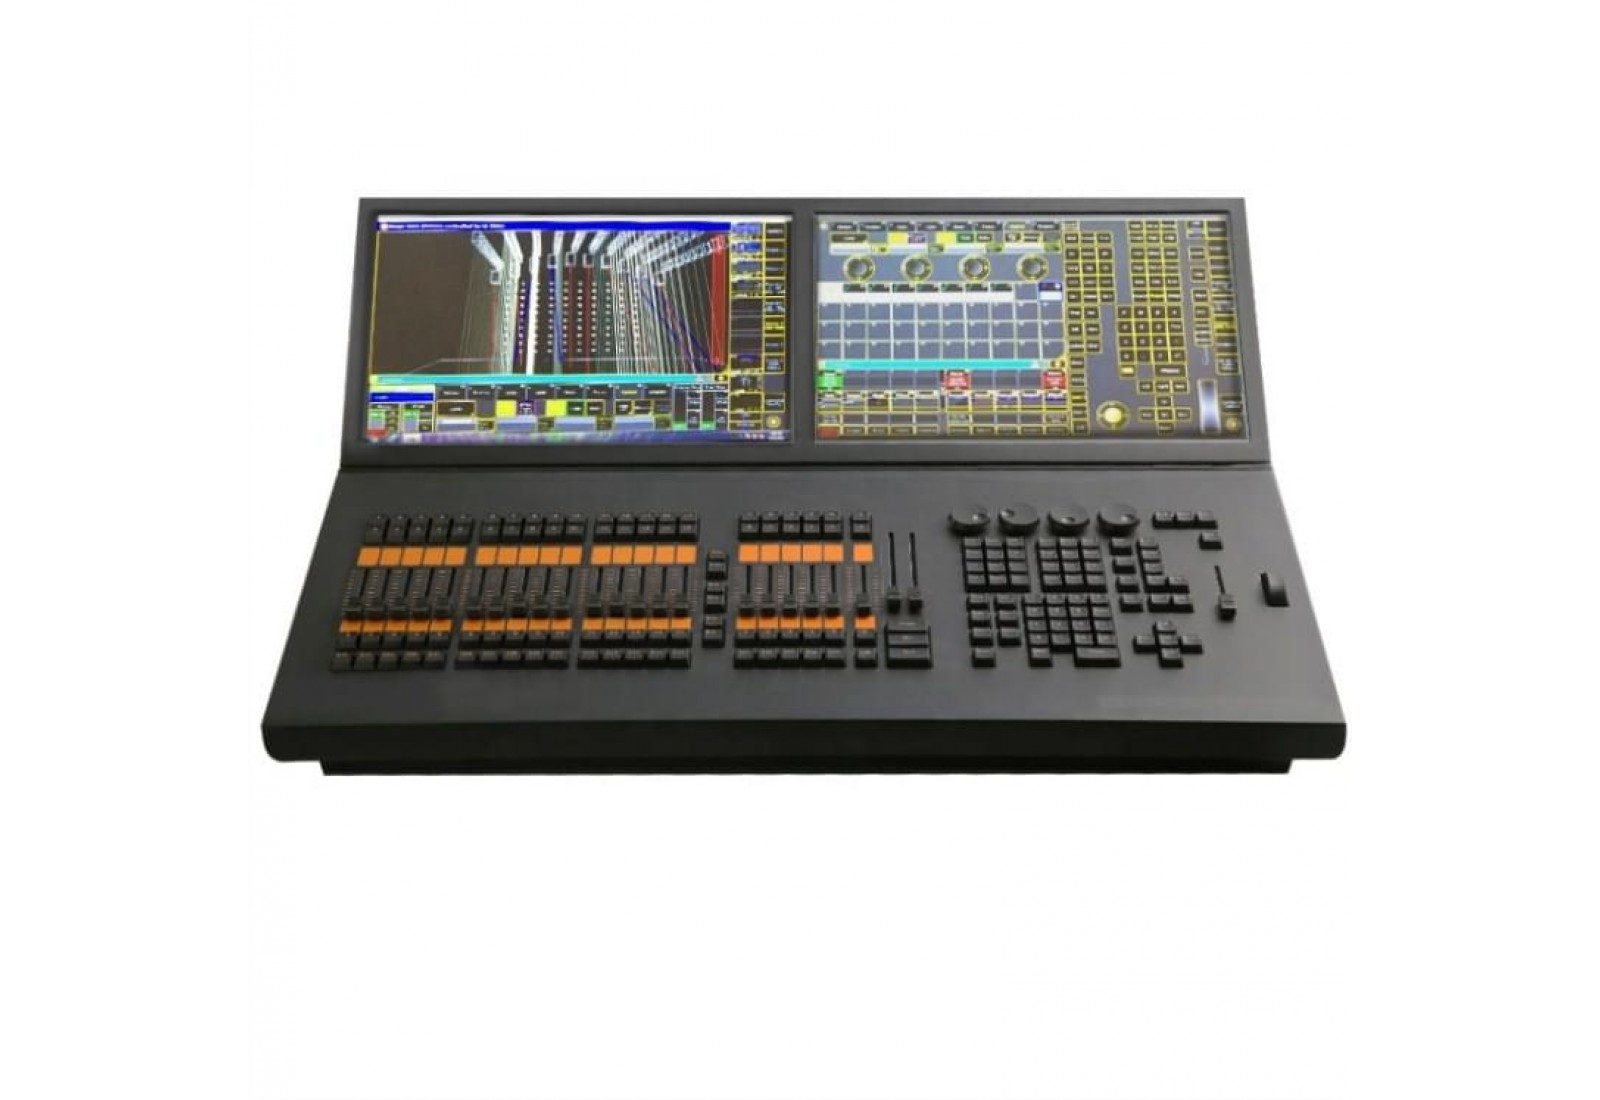 Grandma 2 Lighting Controller with 2 Touch Displays for DMX Console (EL-MA2 BLACK HORSE)